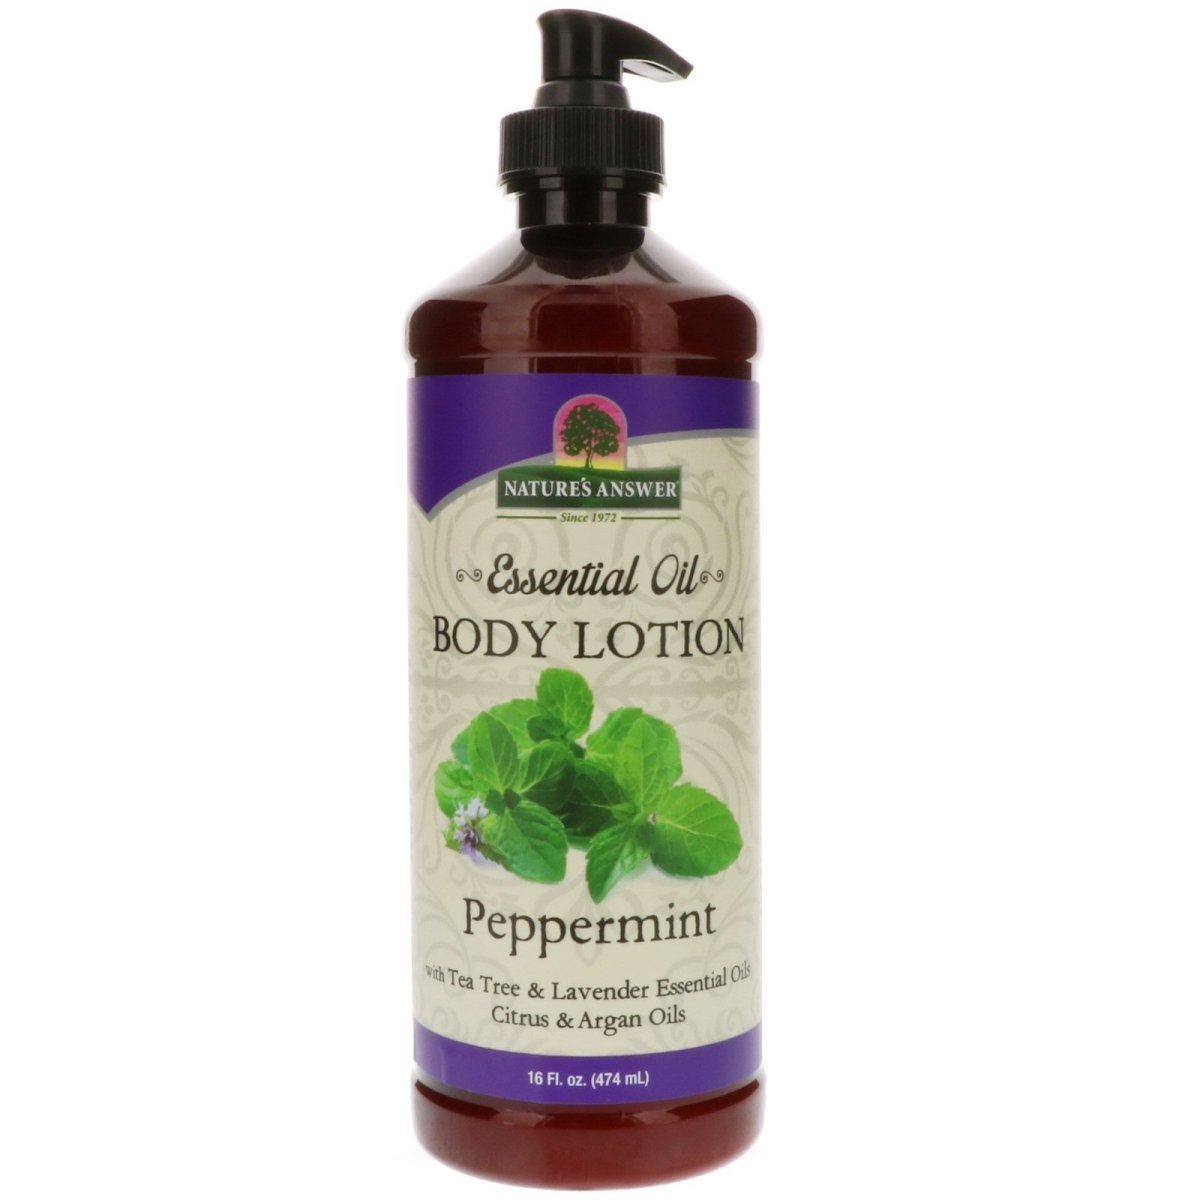 Nature's Answer Essential Oil Body Lotion Peppermint -- 16 fl oz